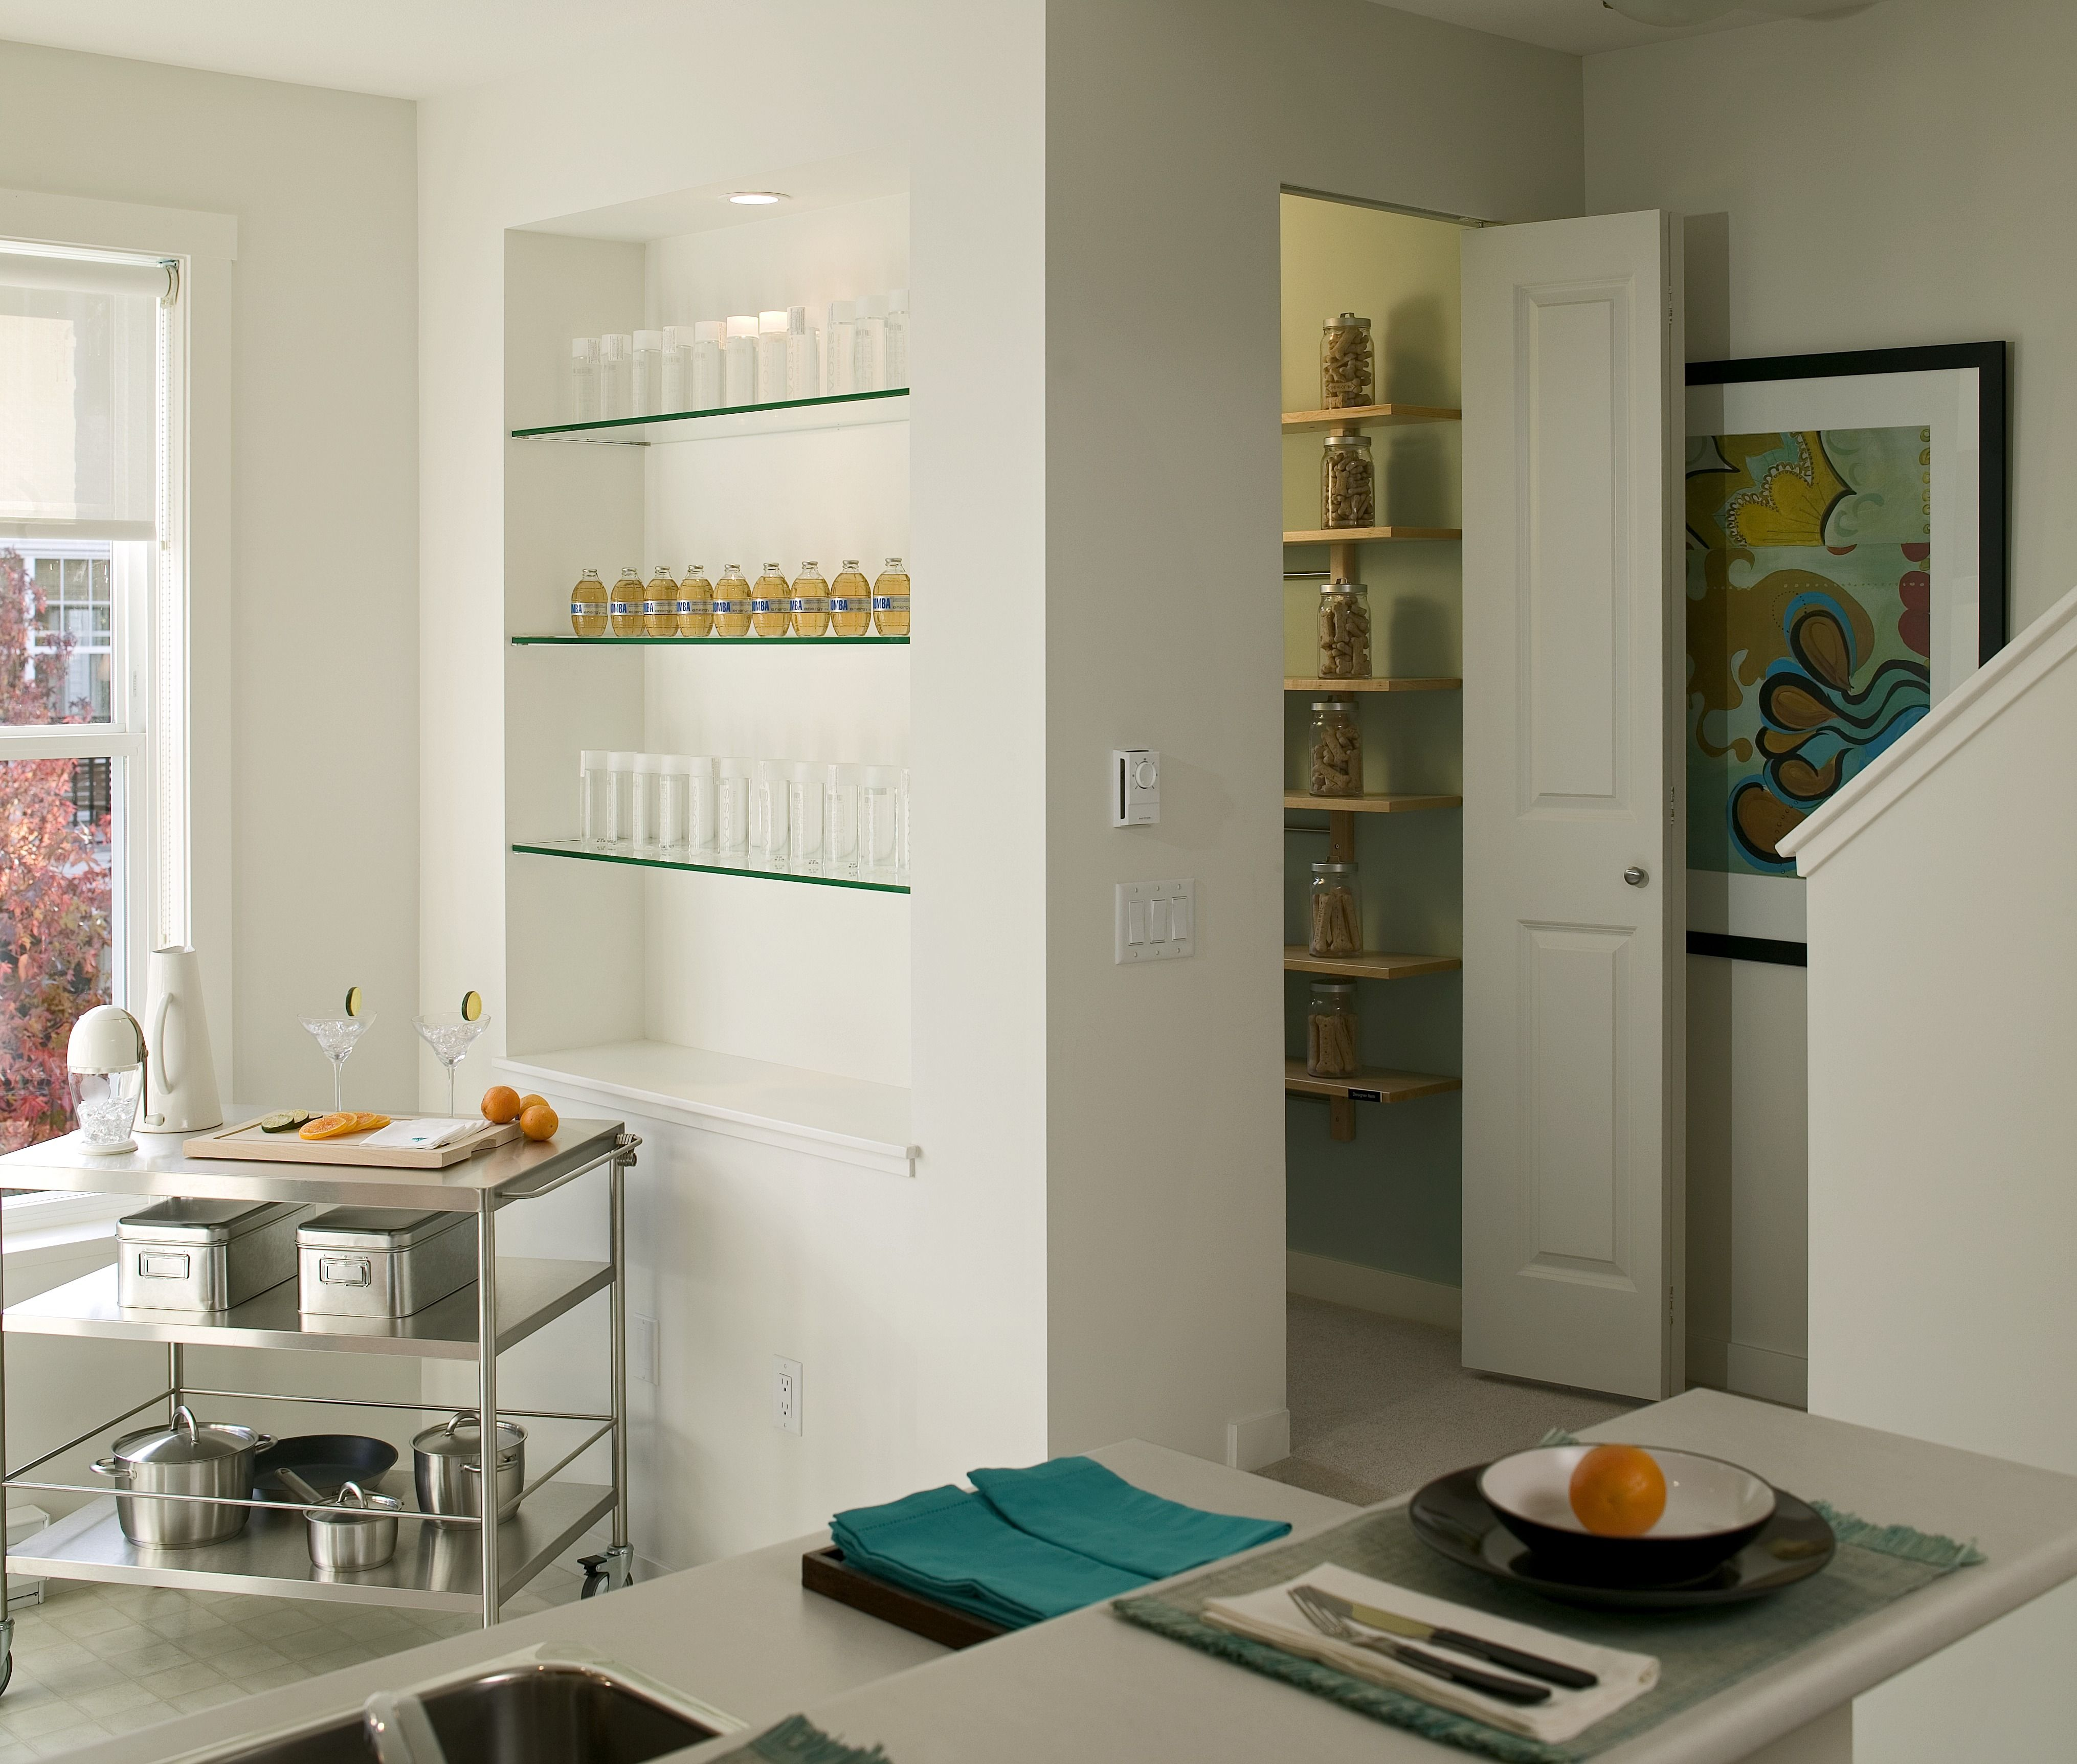 Open shelving is a great way to make your kitchen look bigger than